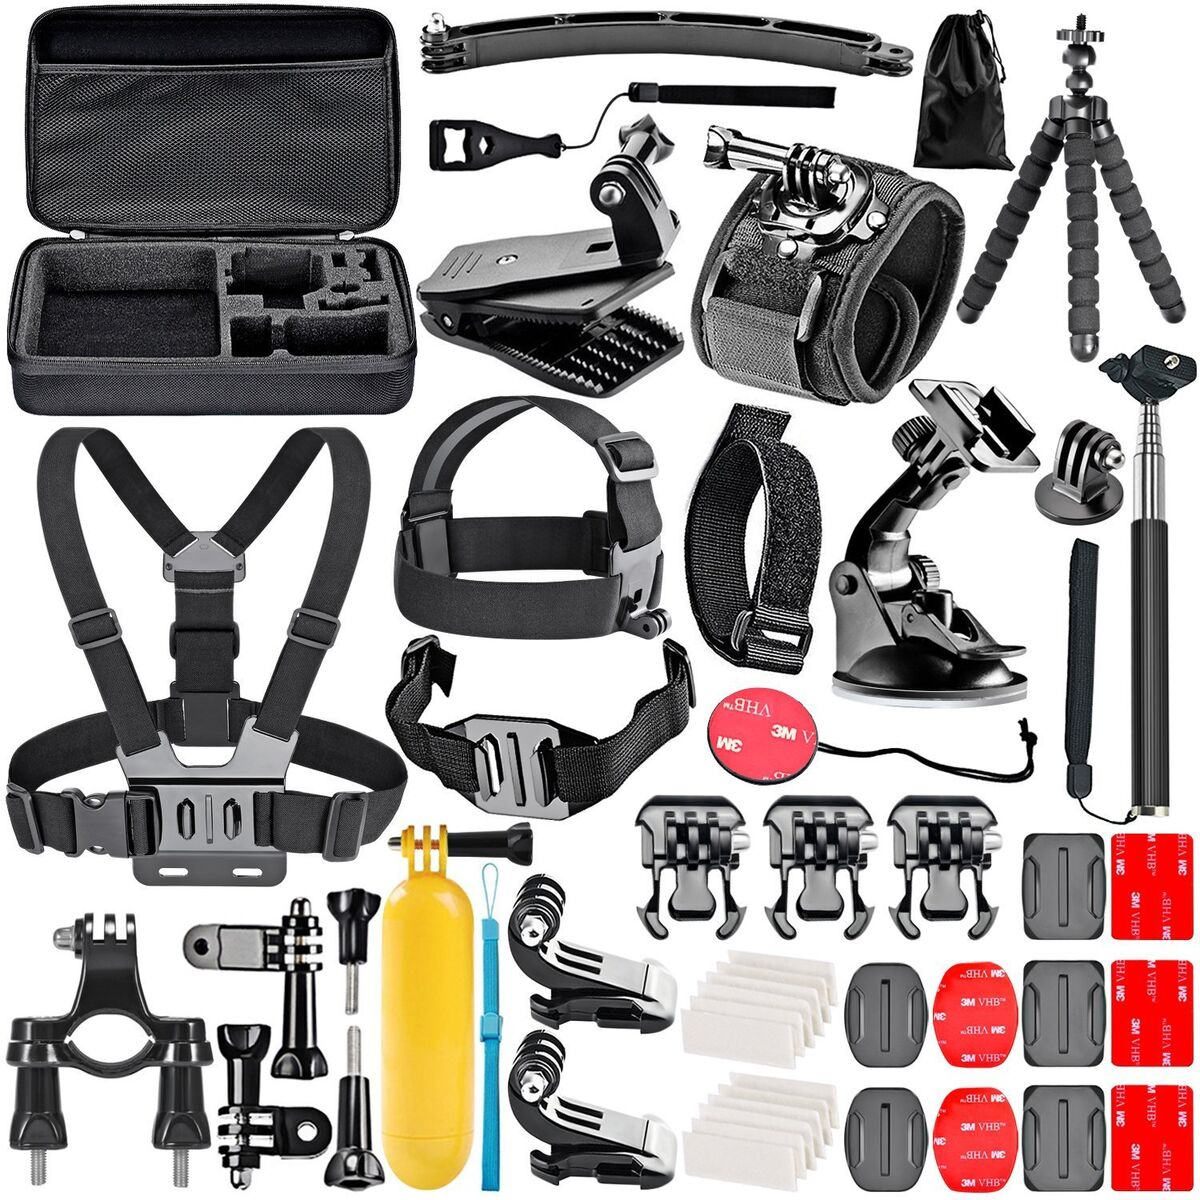 50 in 1 accessori kit per gopro hero session 5 hero 1 2 3 3 4 5 sj4000 5000 600 